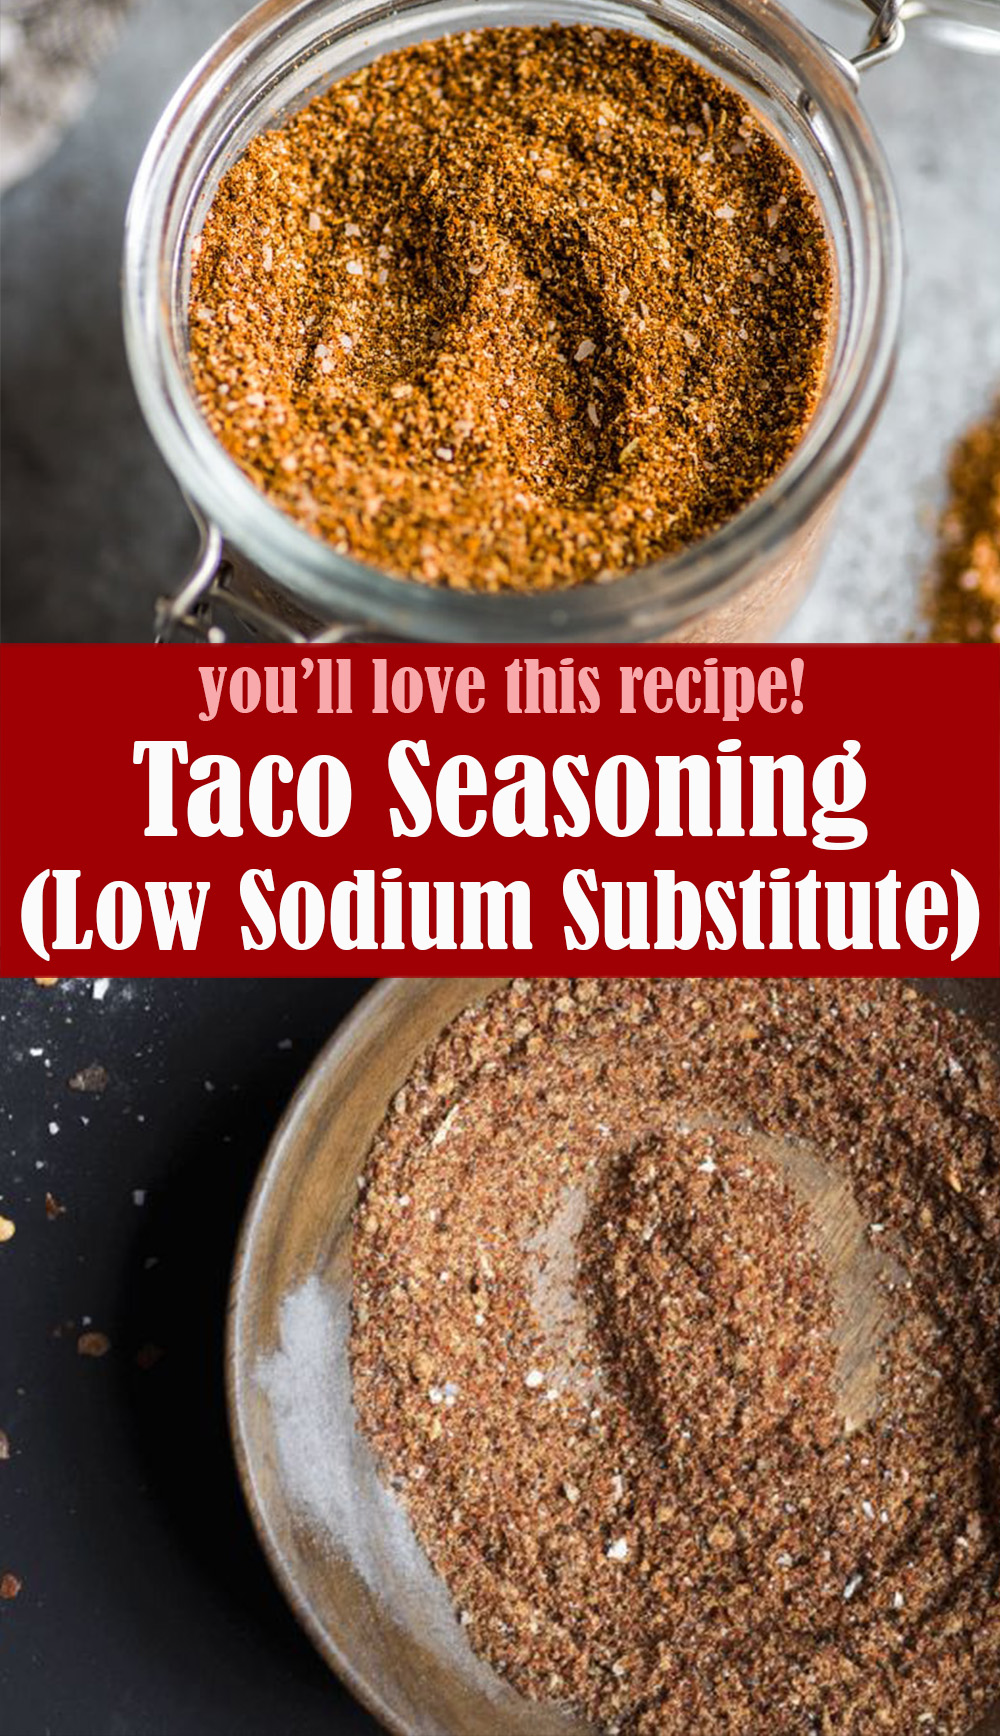 Ingredients  1 tablespoon Chili Powder 2 teaspoons Onion Powder 1 teaspoon Ground Cumin 1 teaspoon Garlic Powder 1 teaspoon Paprika 1 teaspoon Ground Oregano  Directions  Mix all ingredients together.